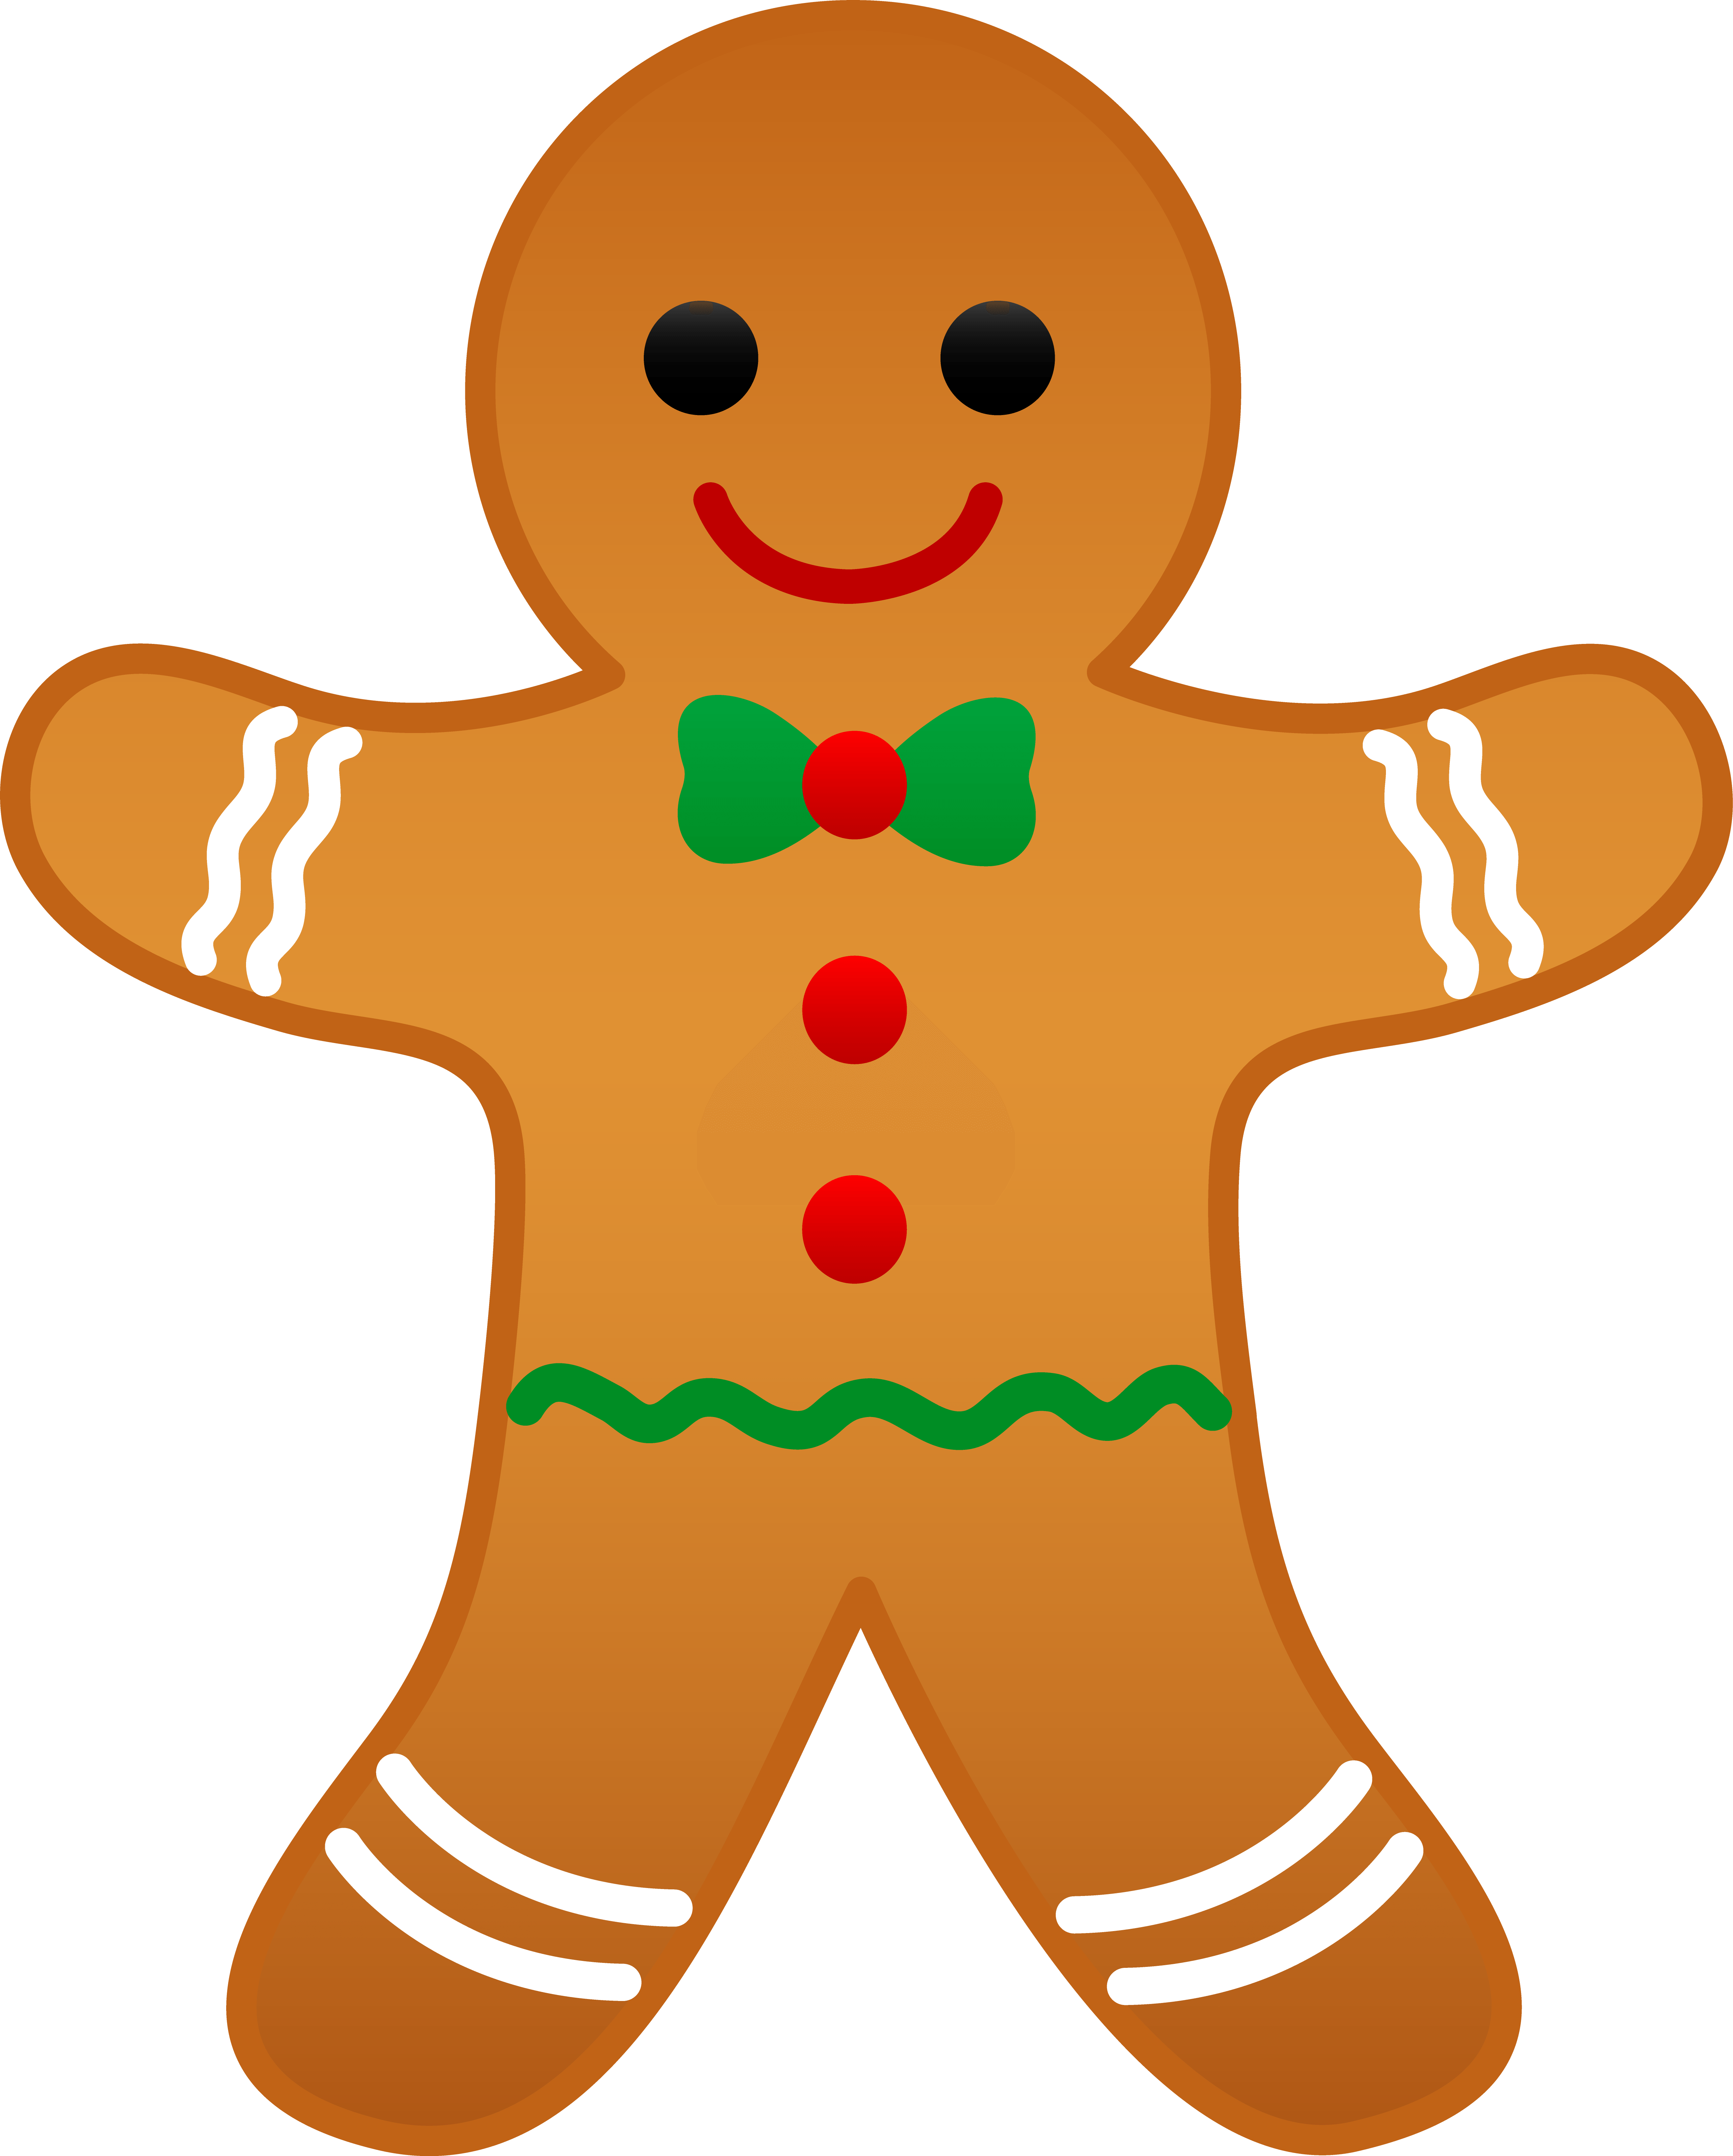 Gingerbread cookie clipart graphic royalty free library Gingerbread Cookie Cliparts - Cliparts Zone graphic royalty free library